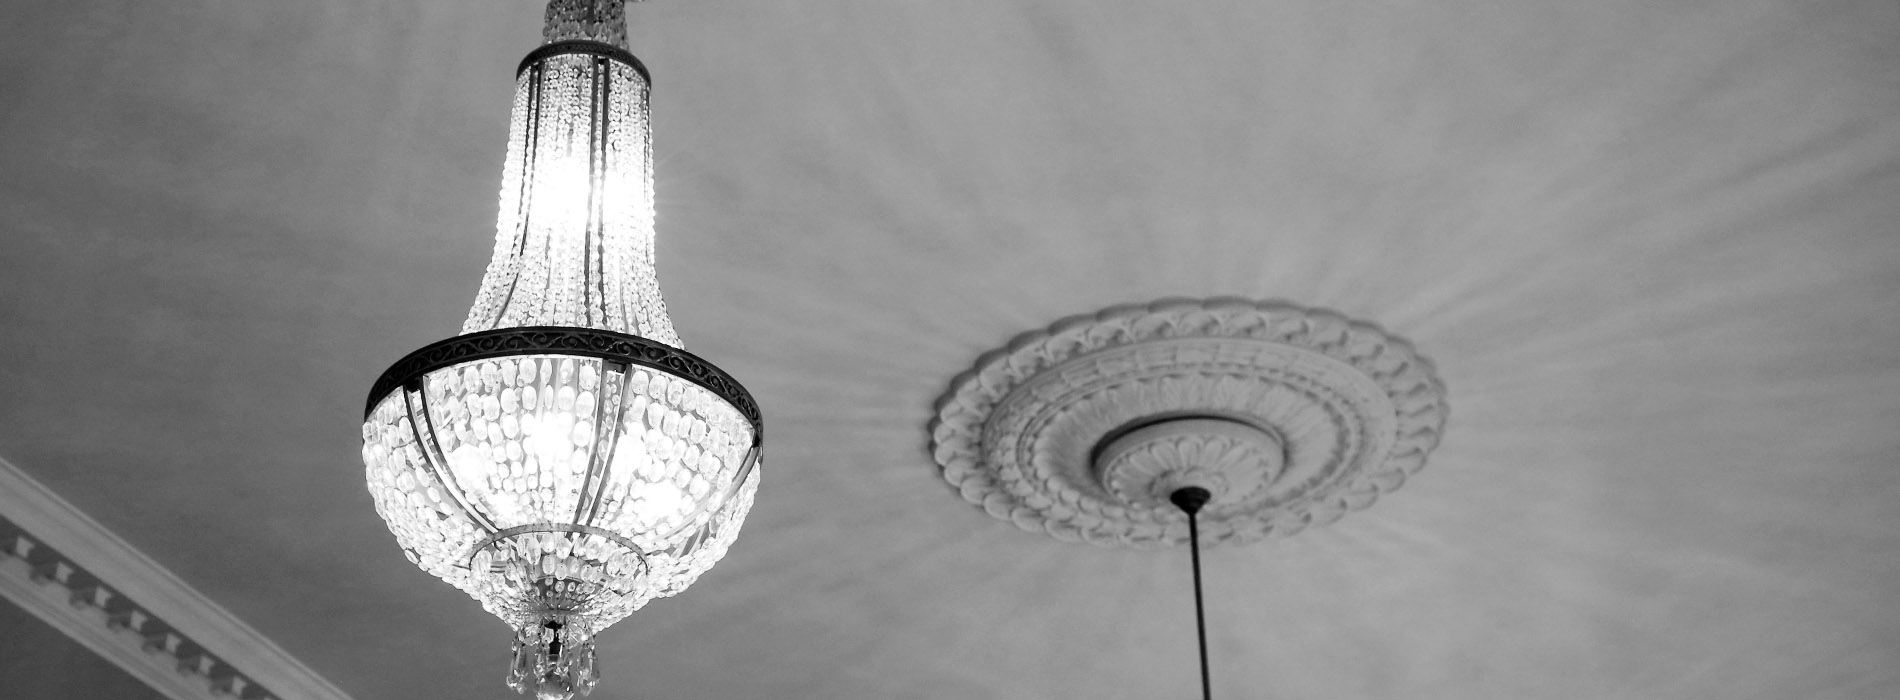 Antique-light-3